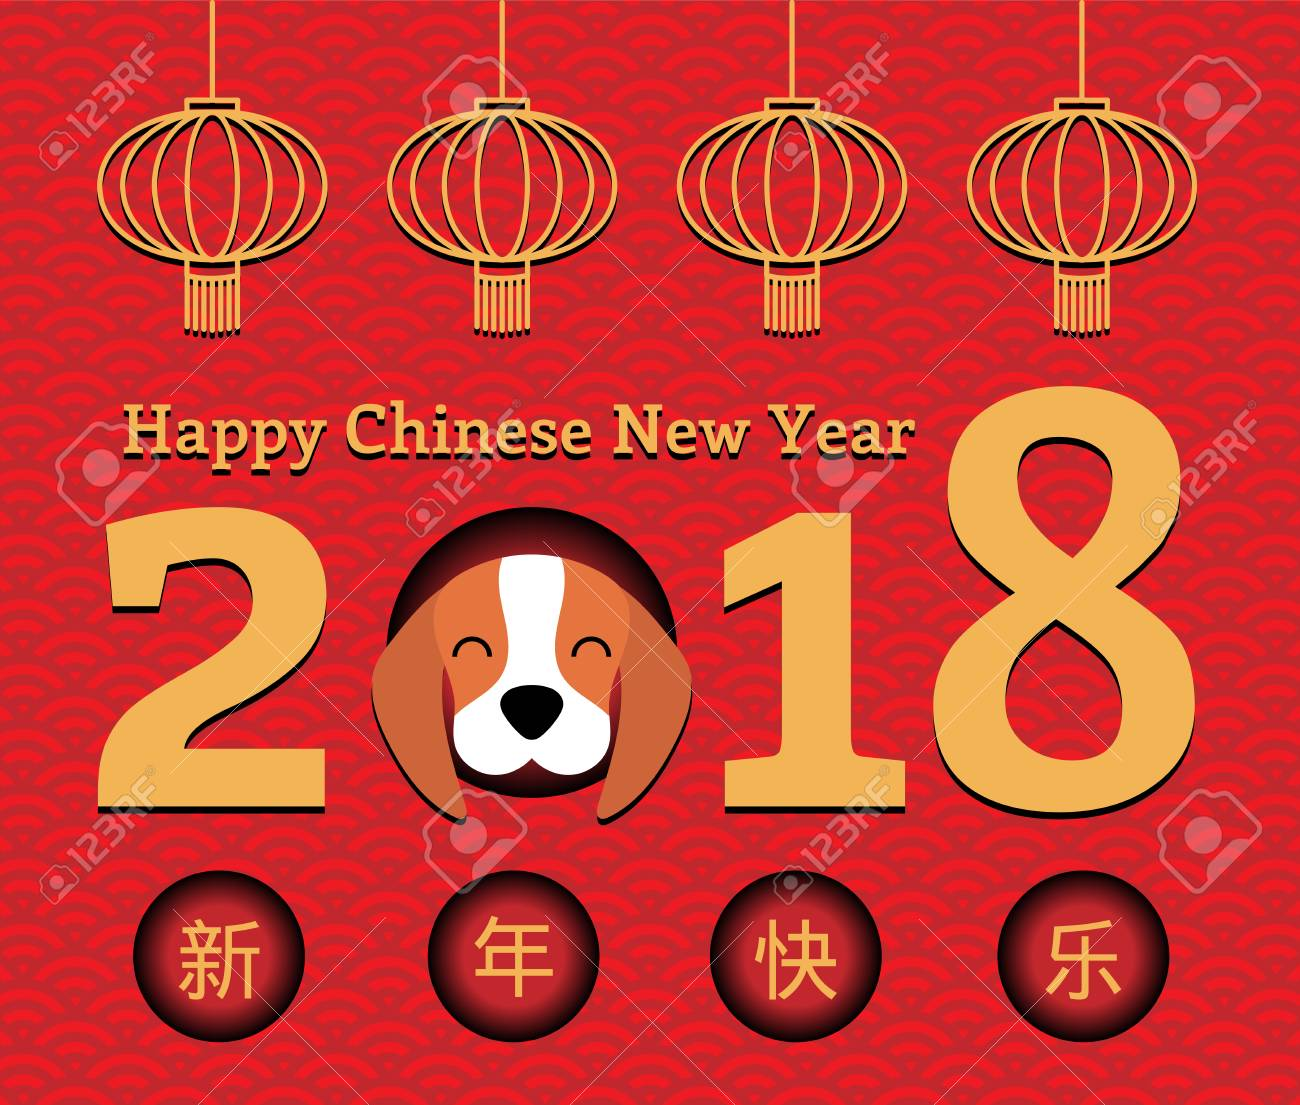 2018 chinese new year greeting card banner with cute funny cartoon 2018 chinese new year greeting card banner with cute funny cartoon dog numbers m4hsunfo